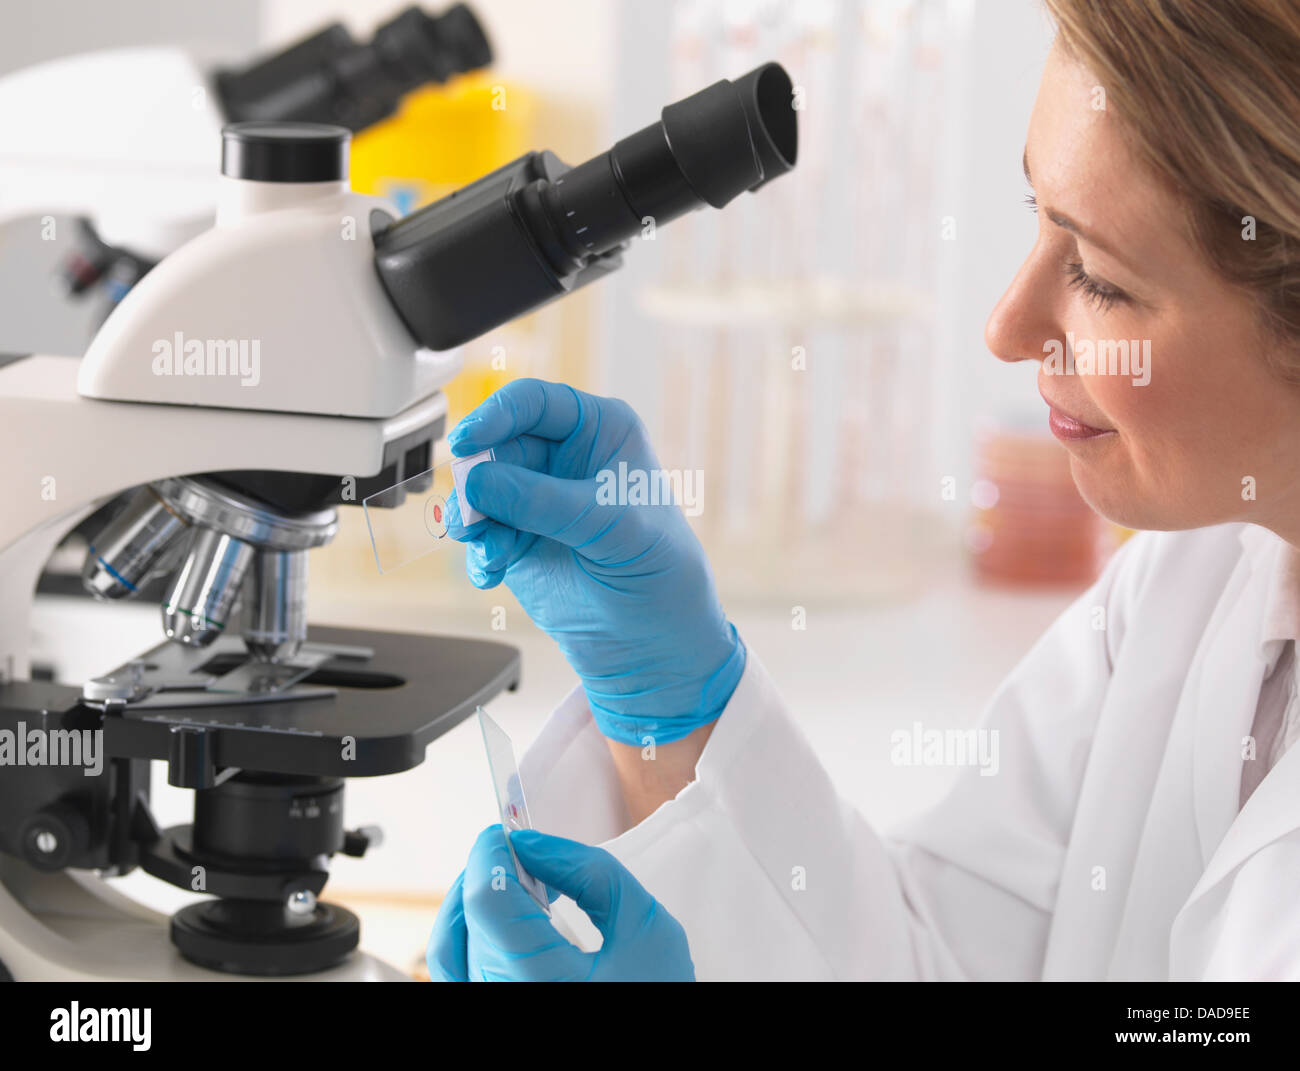 Microbiologiste femelle affichage lame sous microscope in lab Photo Stock